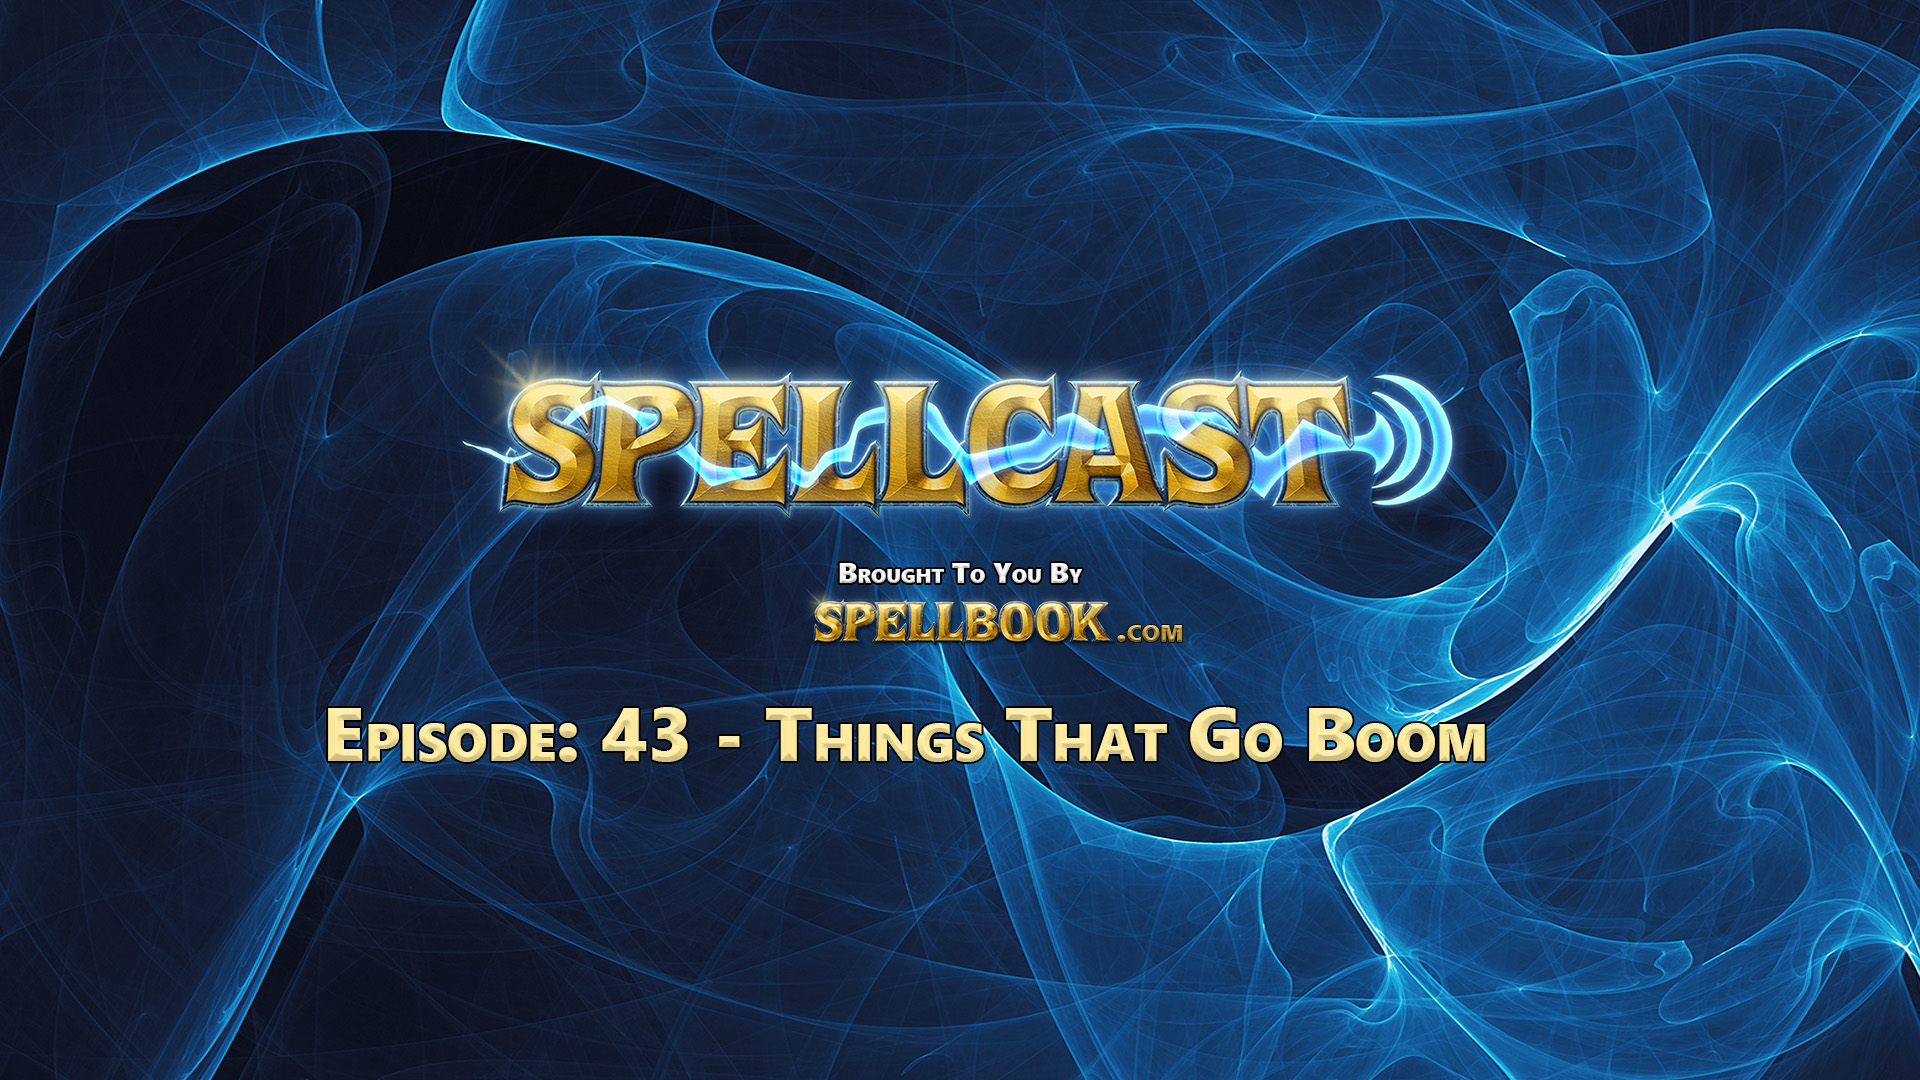 Spellcast Episode: 43 - Things That Go Boom